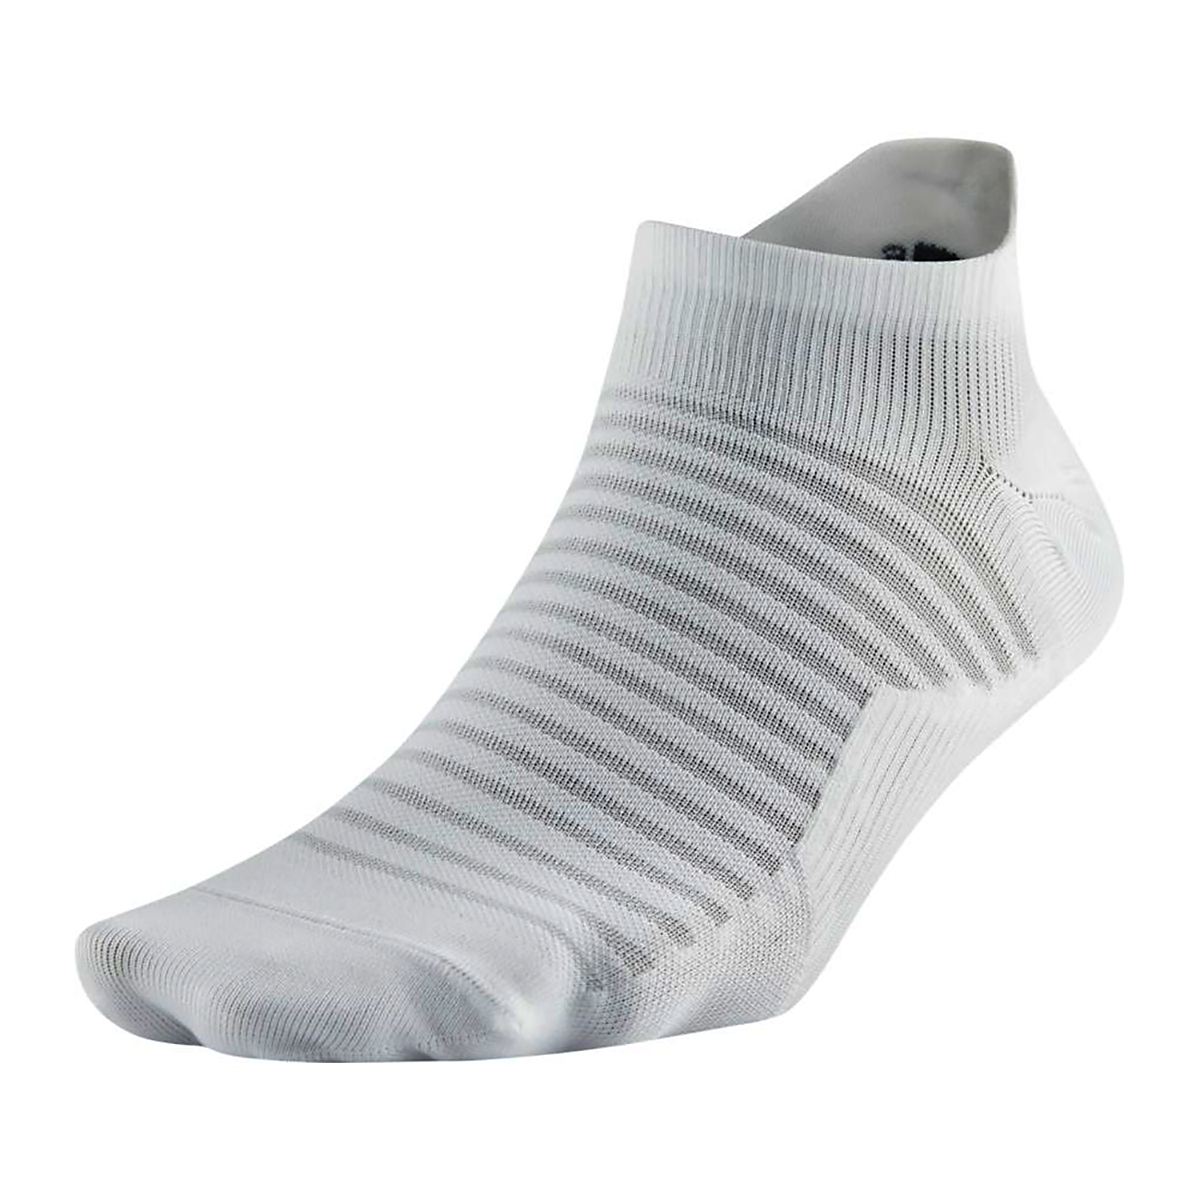 Nike Spark Lightweight No-Show Running Socks - Color: White - Size: 4/5.5, White, large, image 1